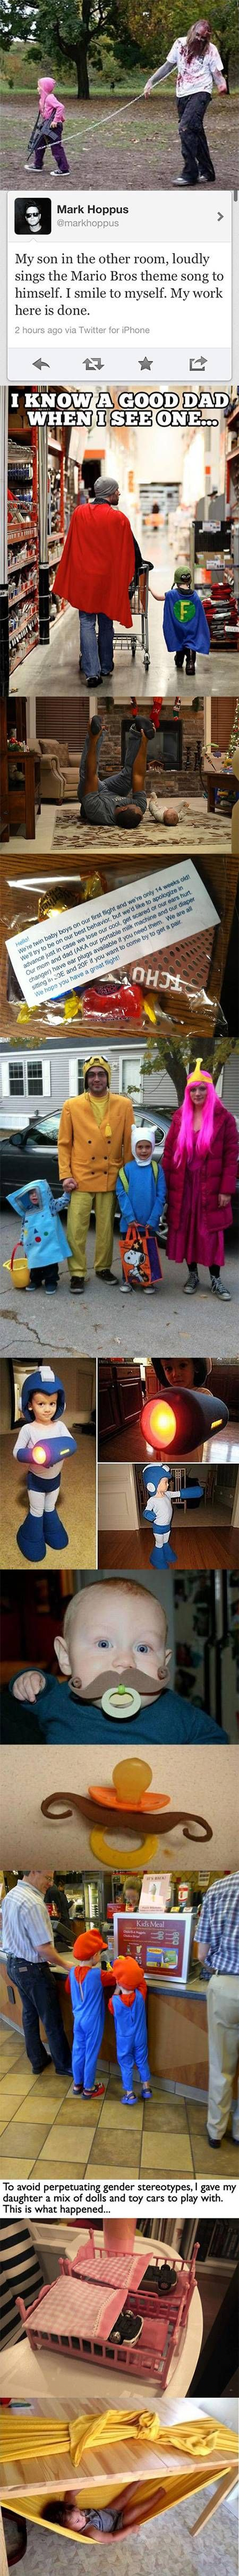 Here's a collection of twelve fun and creative examples of geeky parenting.